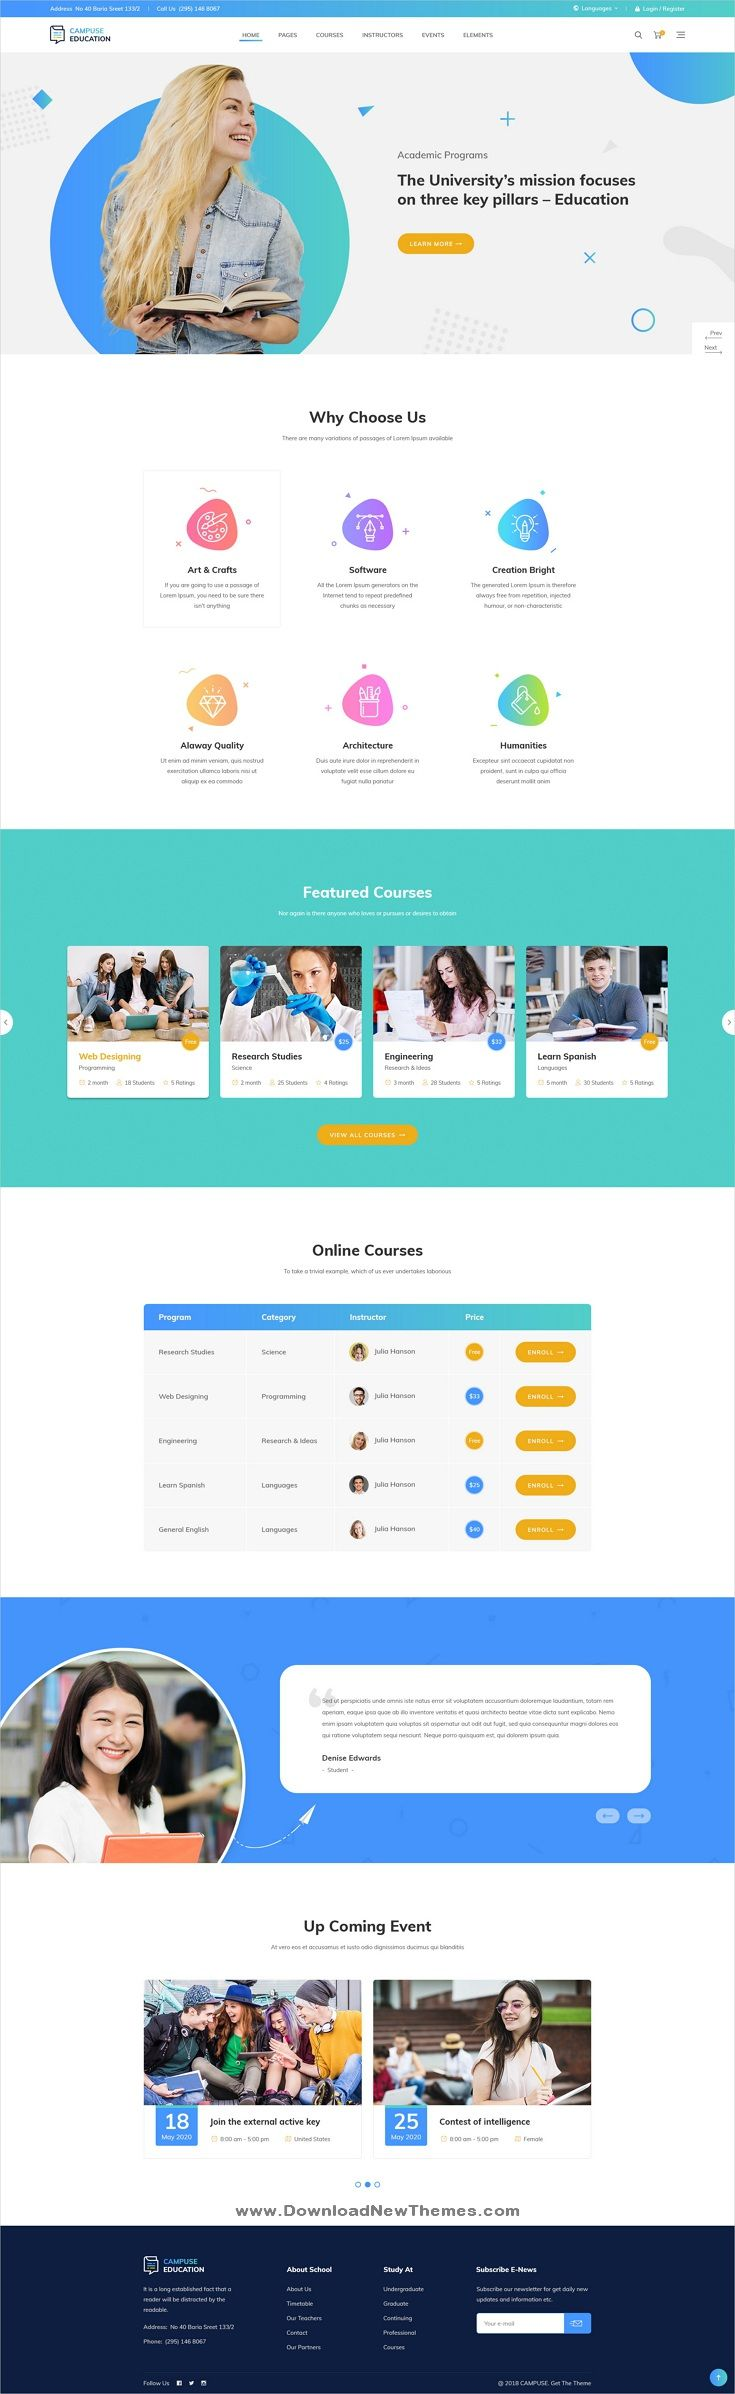 Campuse Is A Clean And Modern Design Psd Template For University School Online Learning Course Conferences And Educati Dizajn Veb Sajtov Veb Dizajn Sajt